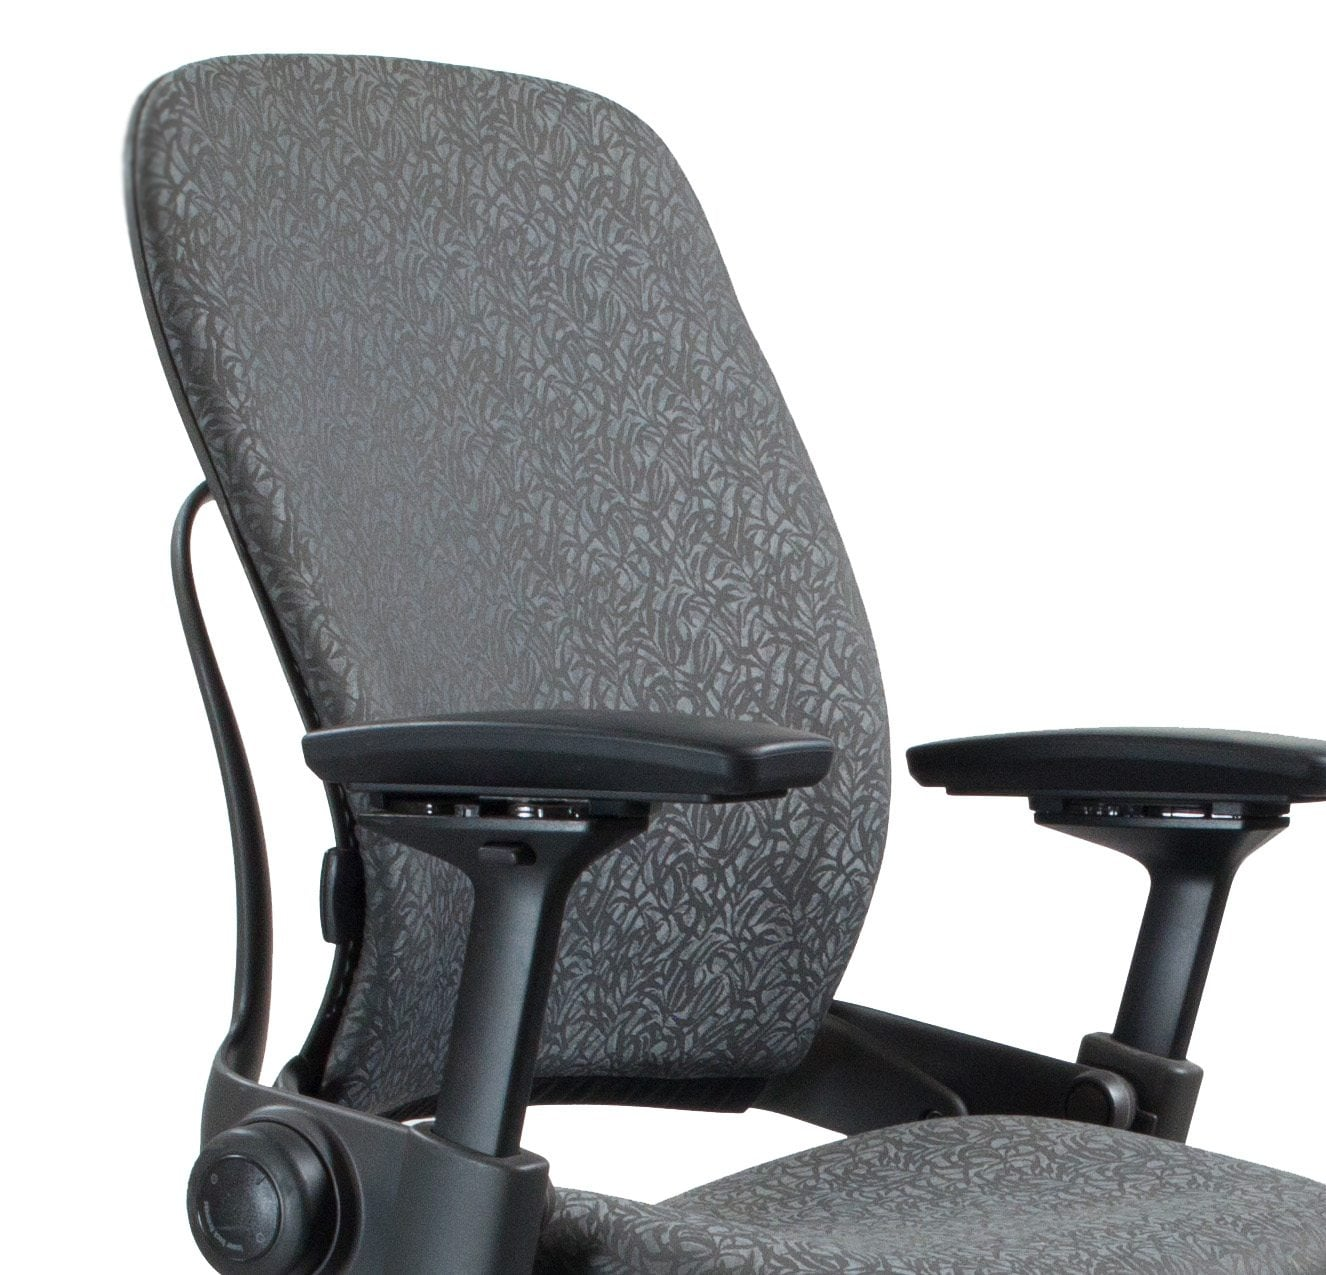 steelcase leap chair v2 review brown office without arms used stool dark gray leaf national